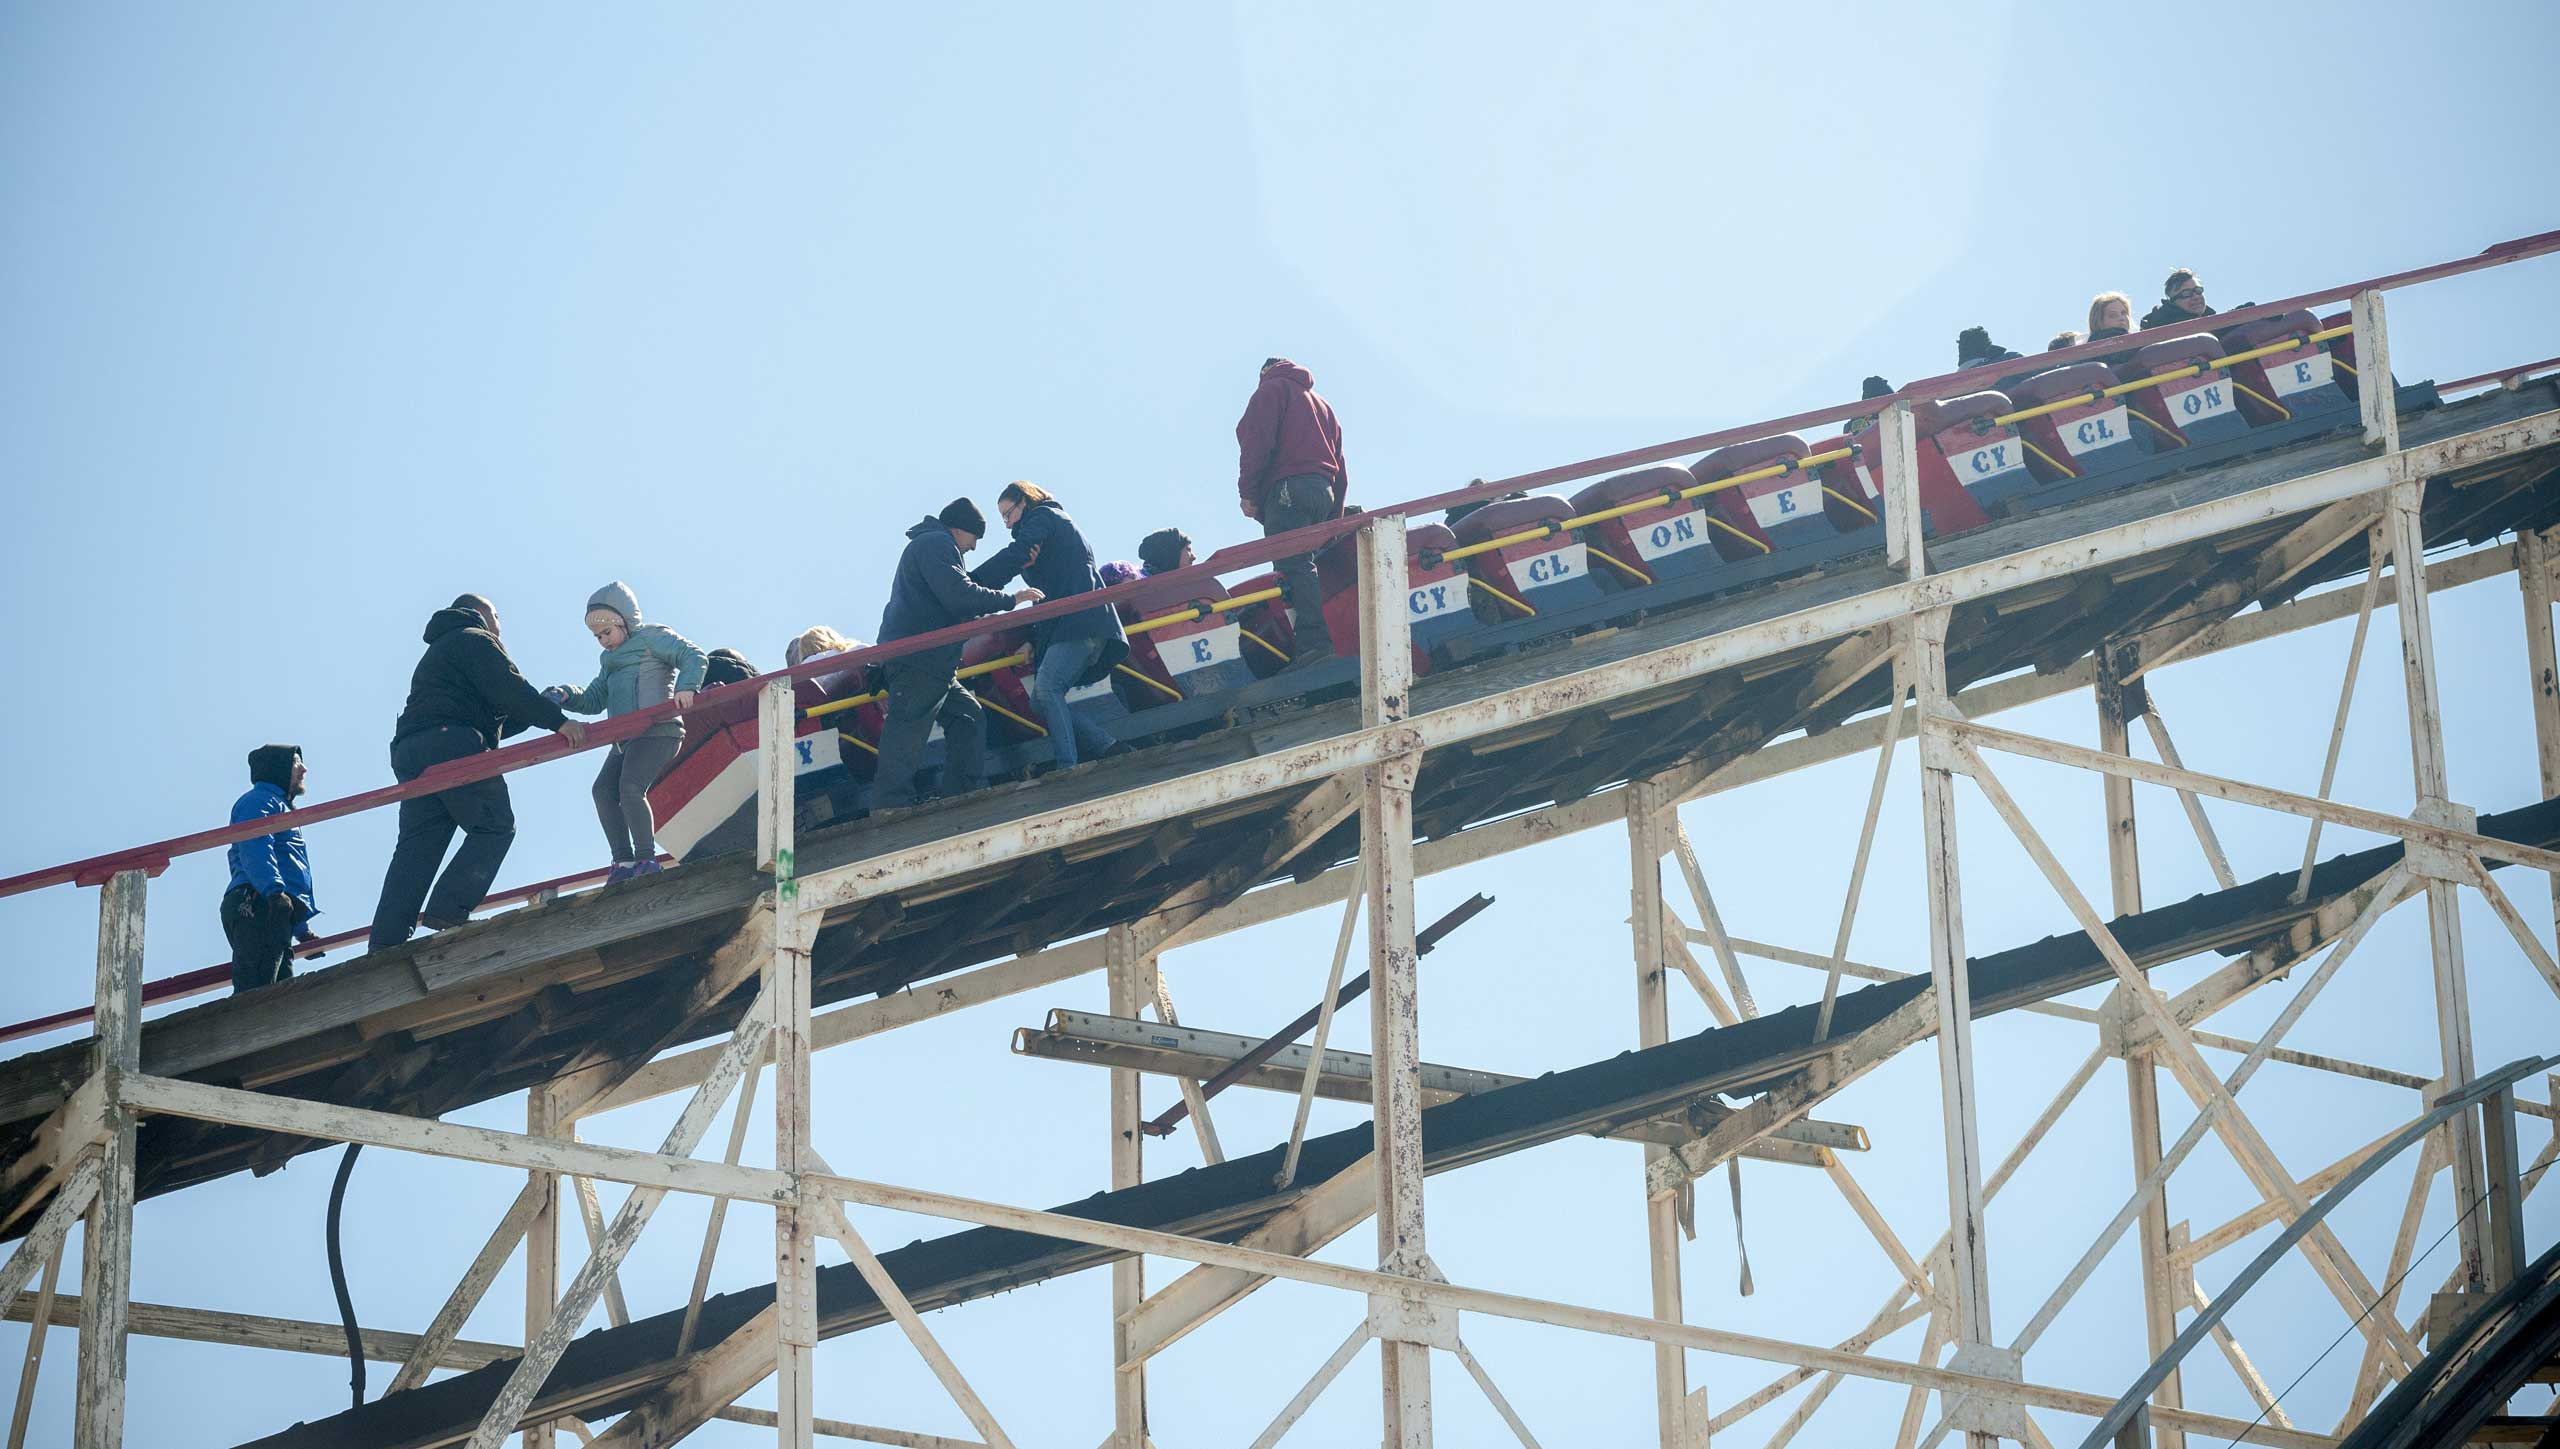 Workers assist thrill seekers on the Luna Park Coney Island Cyclone roller coaster after it got stuck on its inaugural run of the Summer 2015 season, on March 29, 2015 in Brooklyn, N.Y.